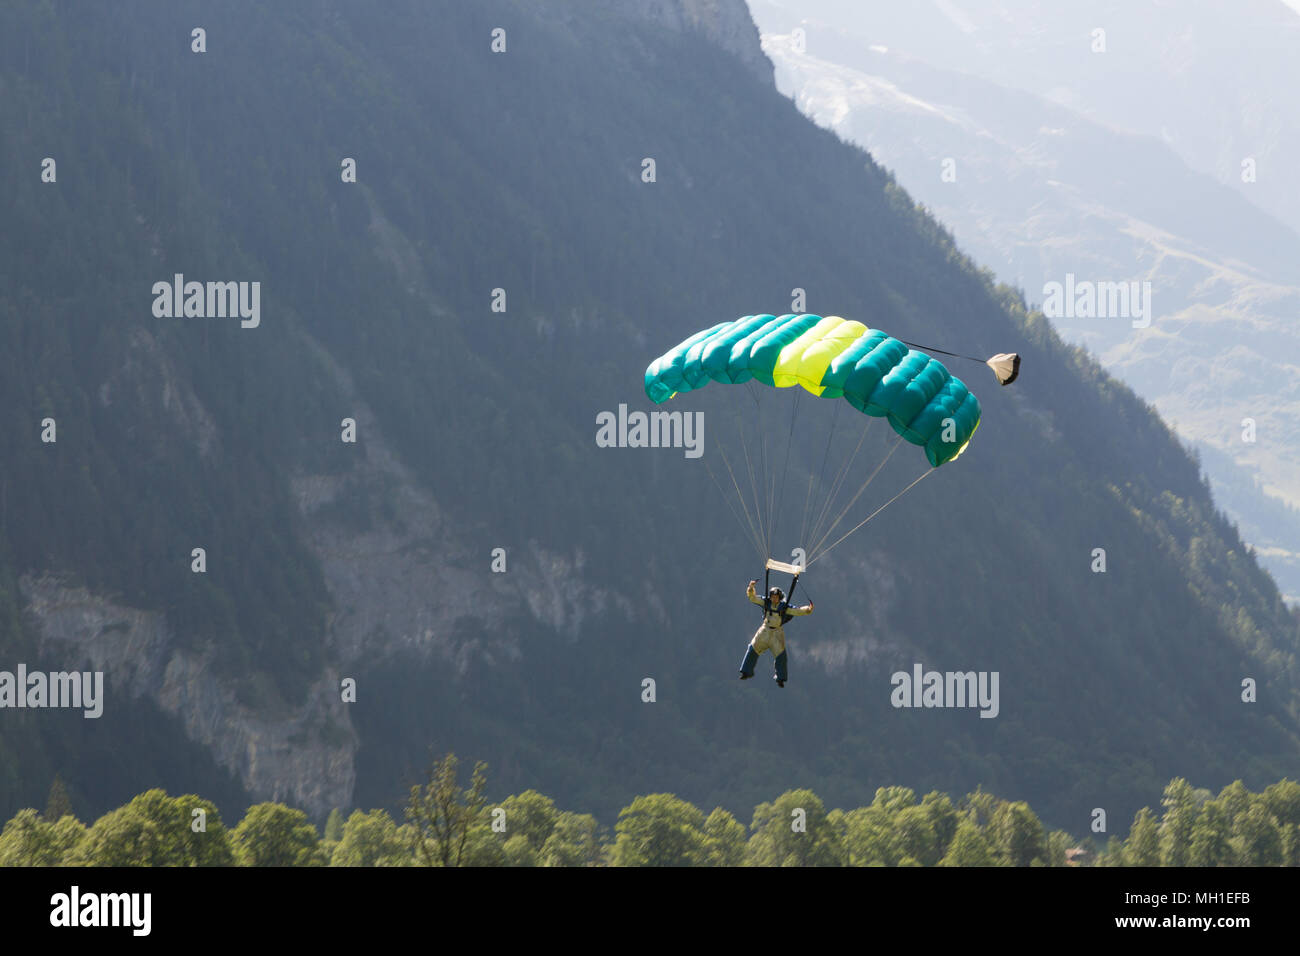 Basejumper soaring with parachute open in Lauterbrunnen Switzerland - Stock Image